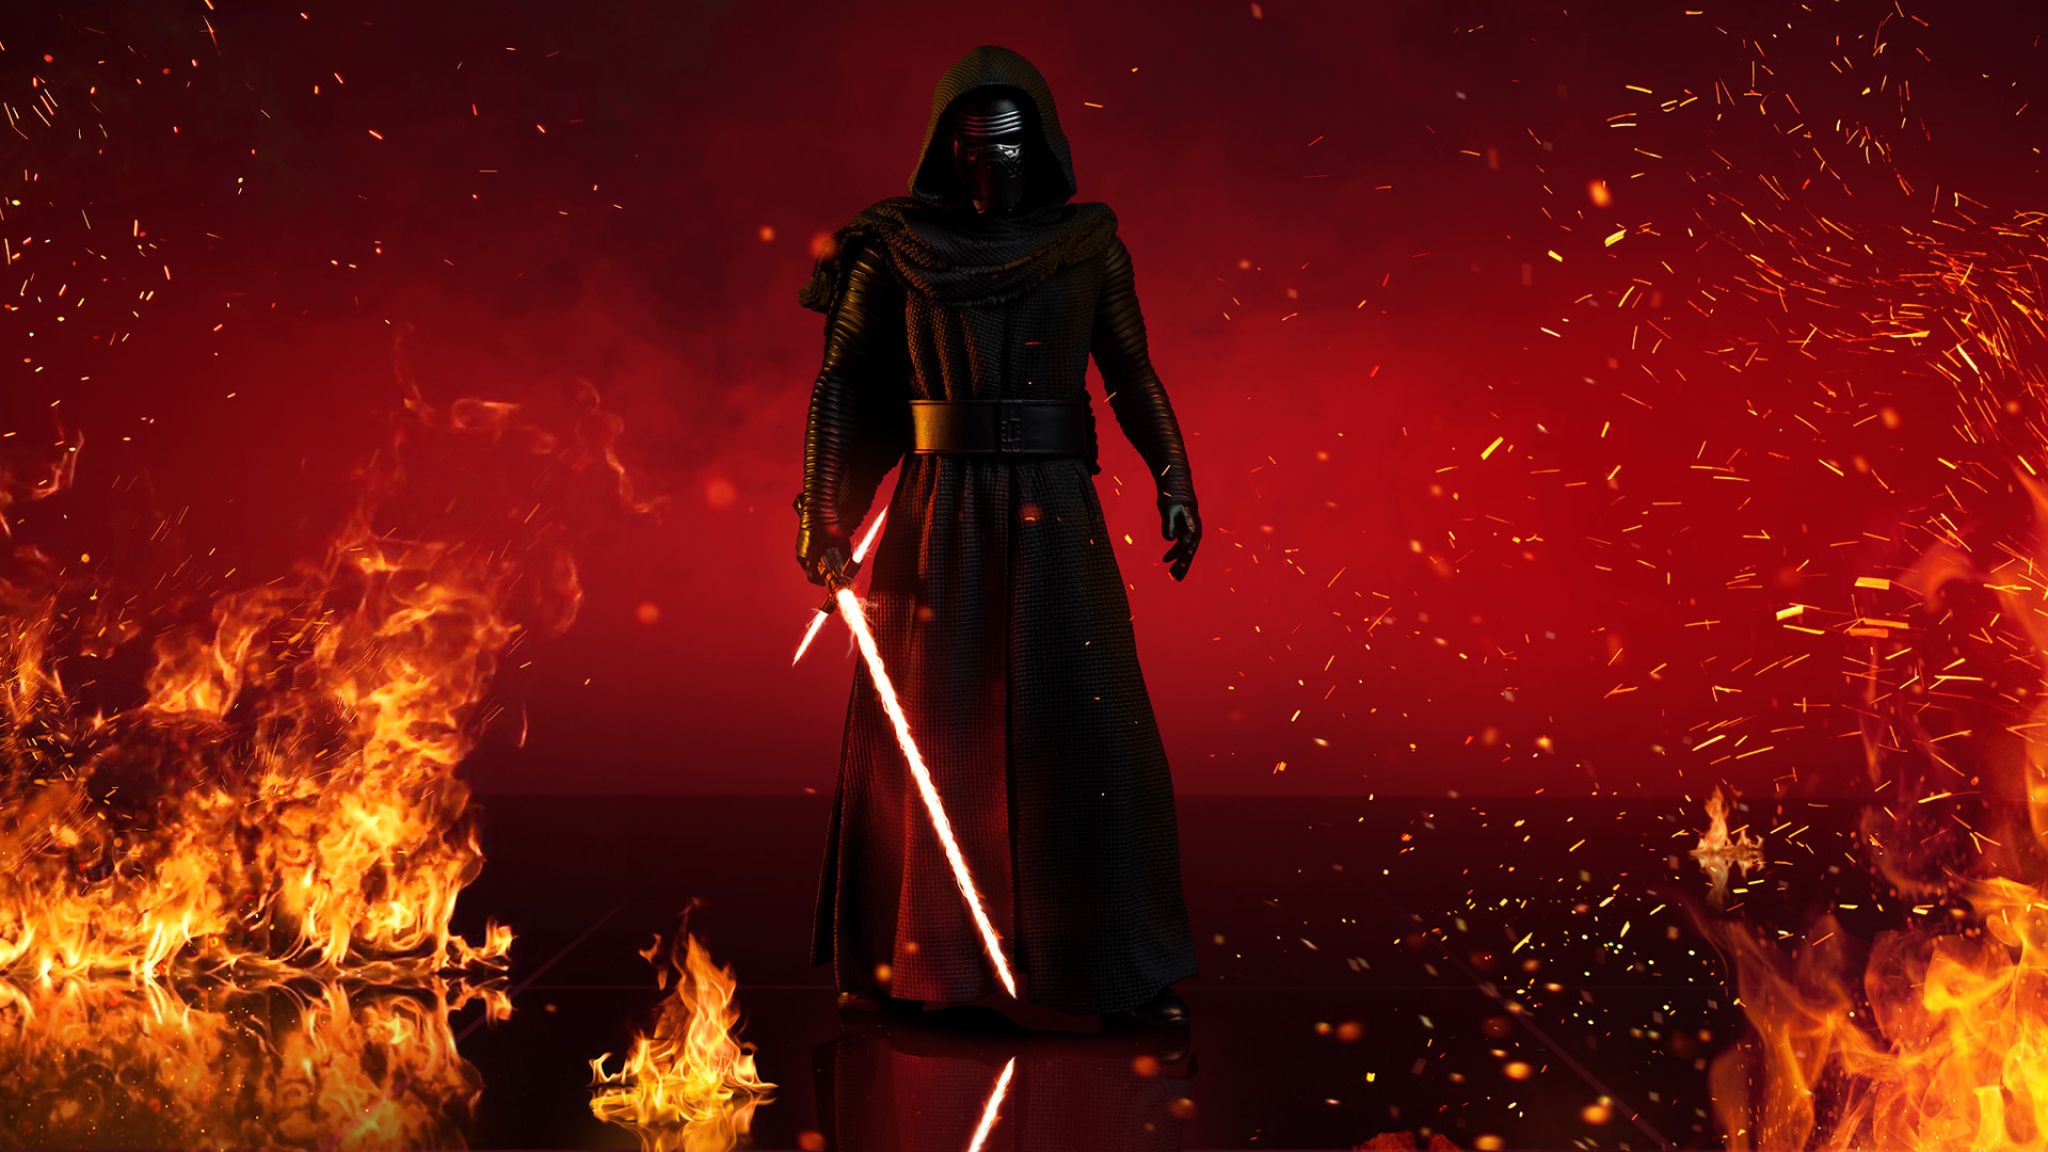 2048x1152 Kylo Ren With Lightsaber In Star Wars 2048x1152